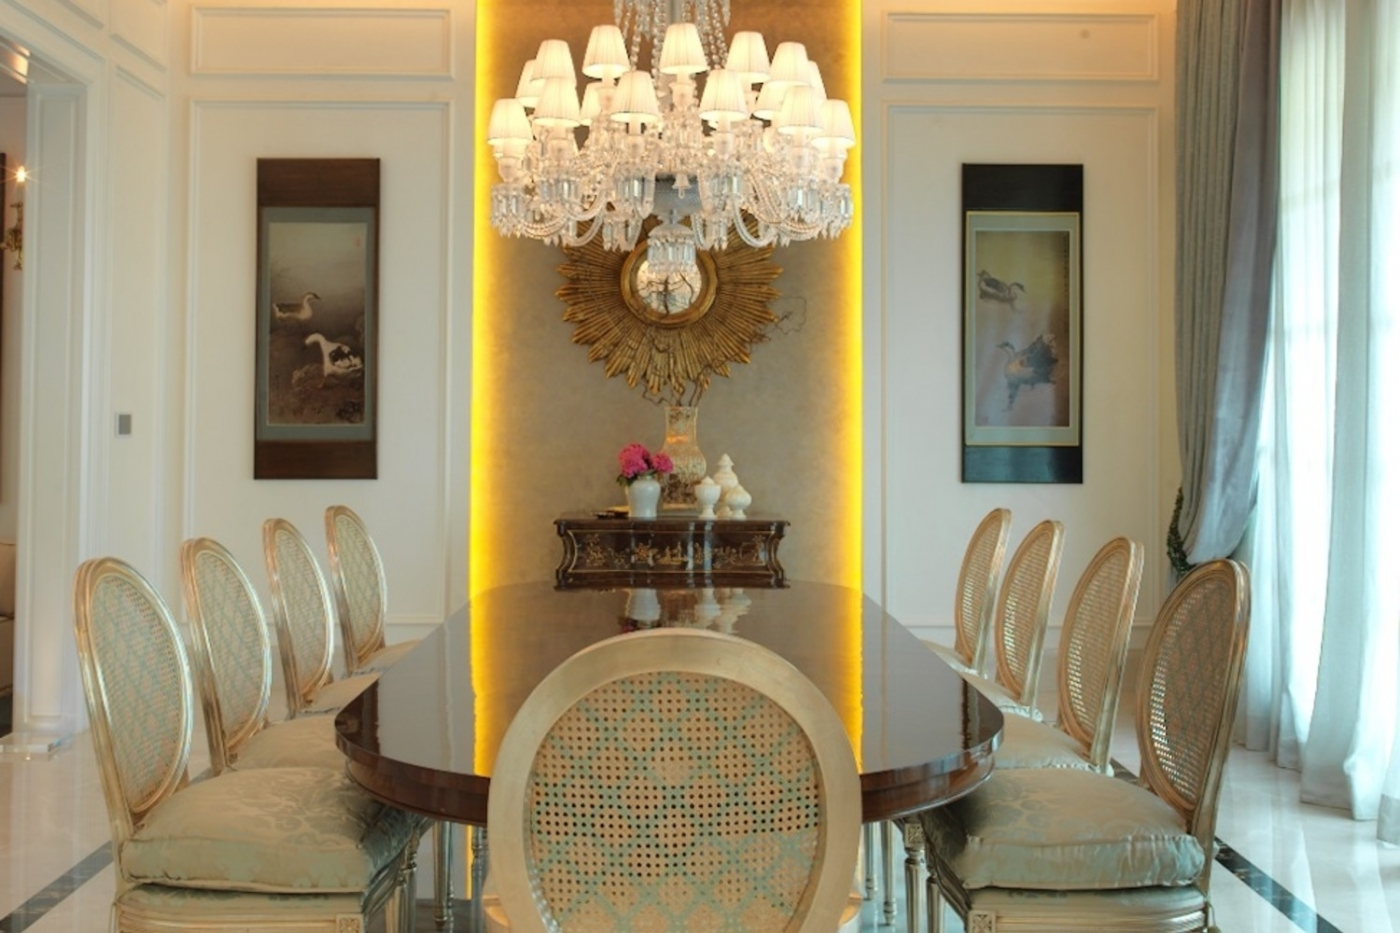 Unravel Vivianne Faye's Vibrant, Sophisticated And Glamorous Interior Design Projects ft